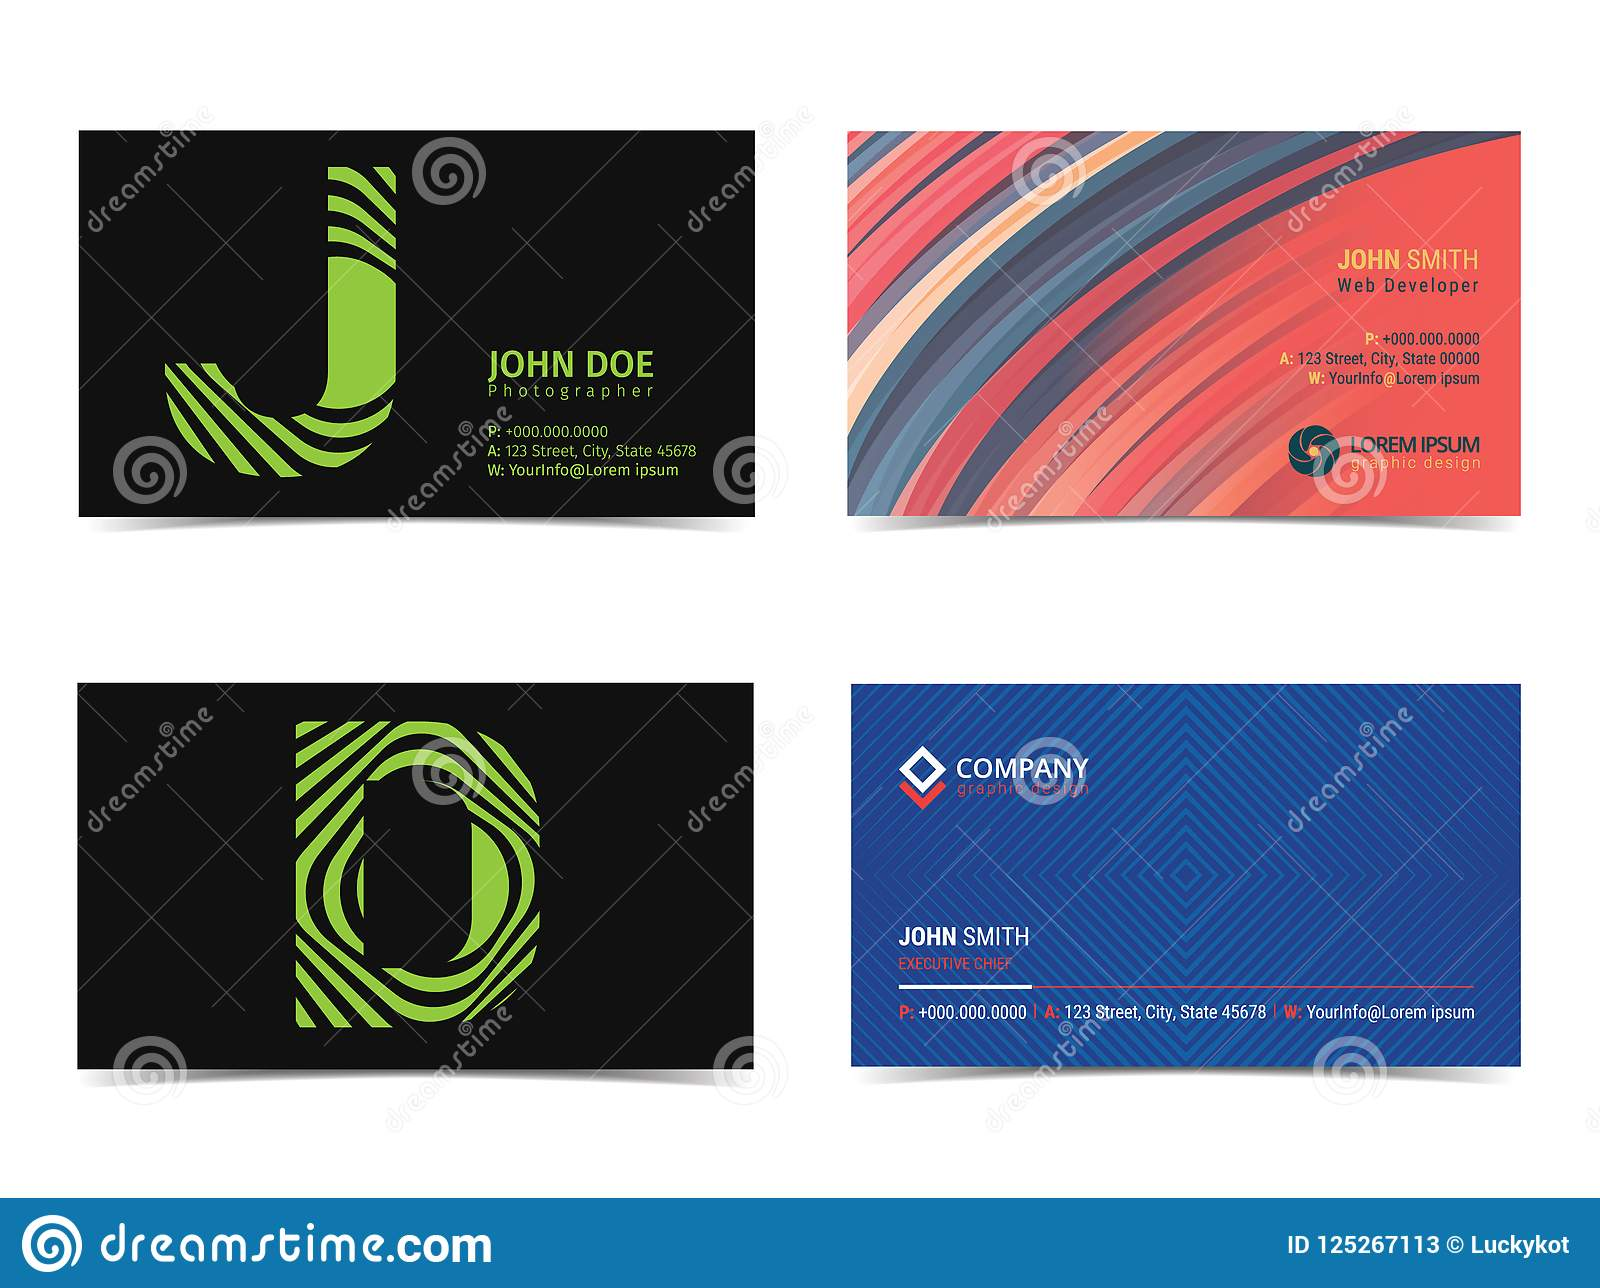 Set of 35 x 2 business card mockup font as illustration stock download set of 35 x 2 business card mockup font as illustration reheart Choice Image